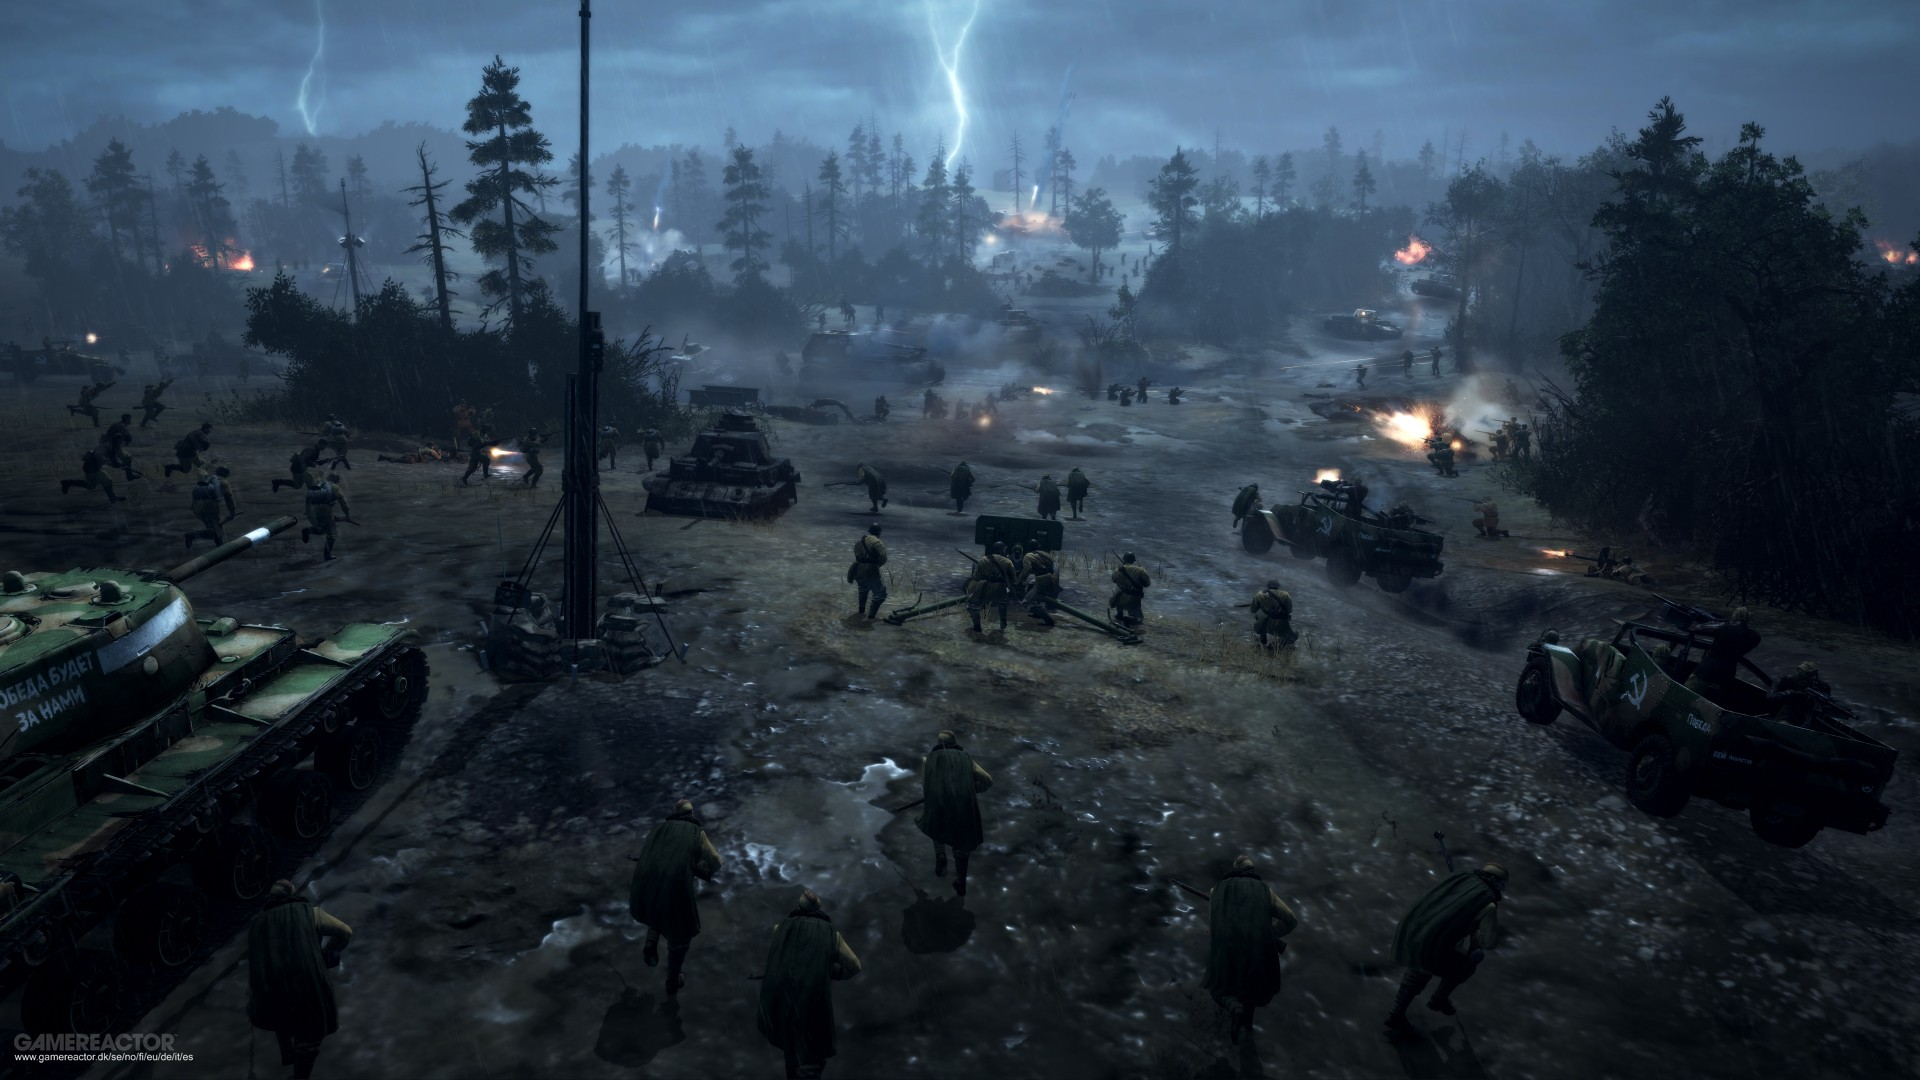 pictures of the eastern front returns in coh2 dlc 5/11